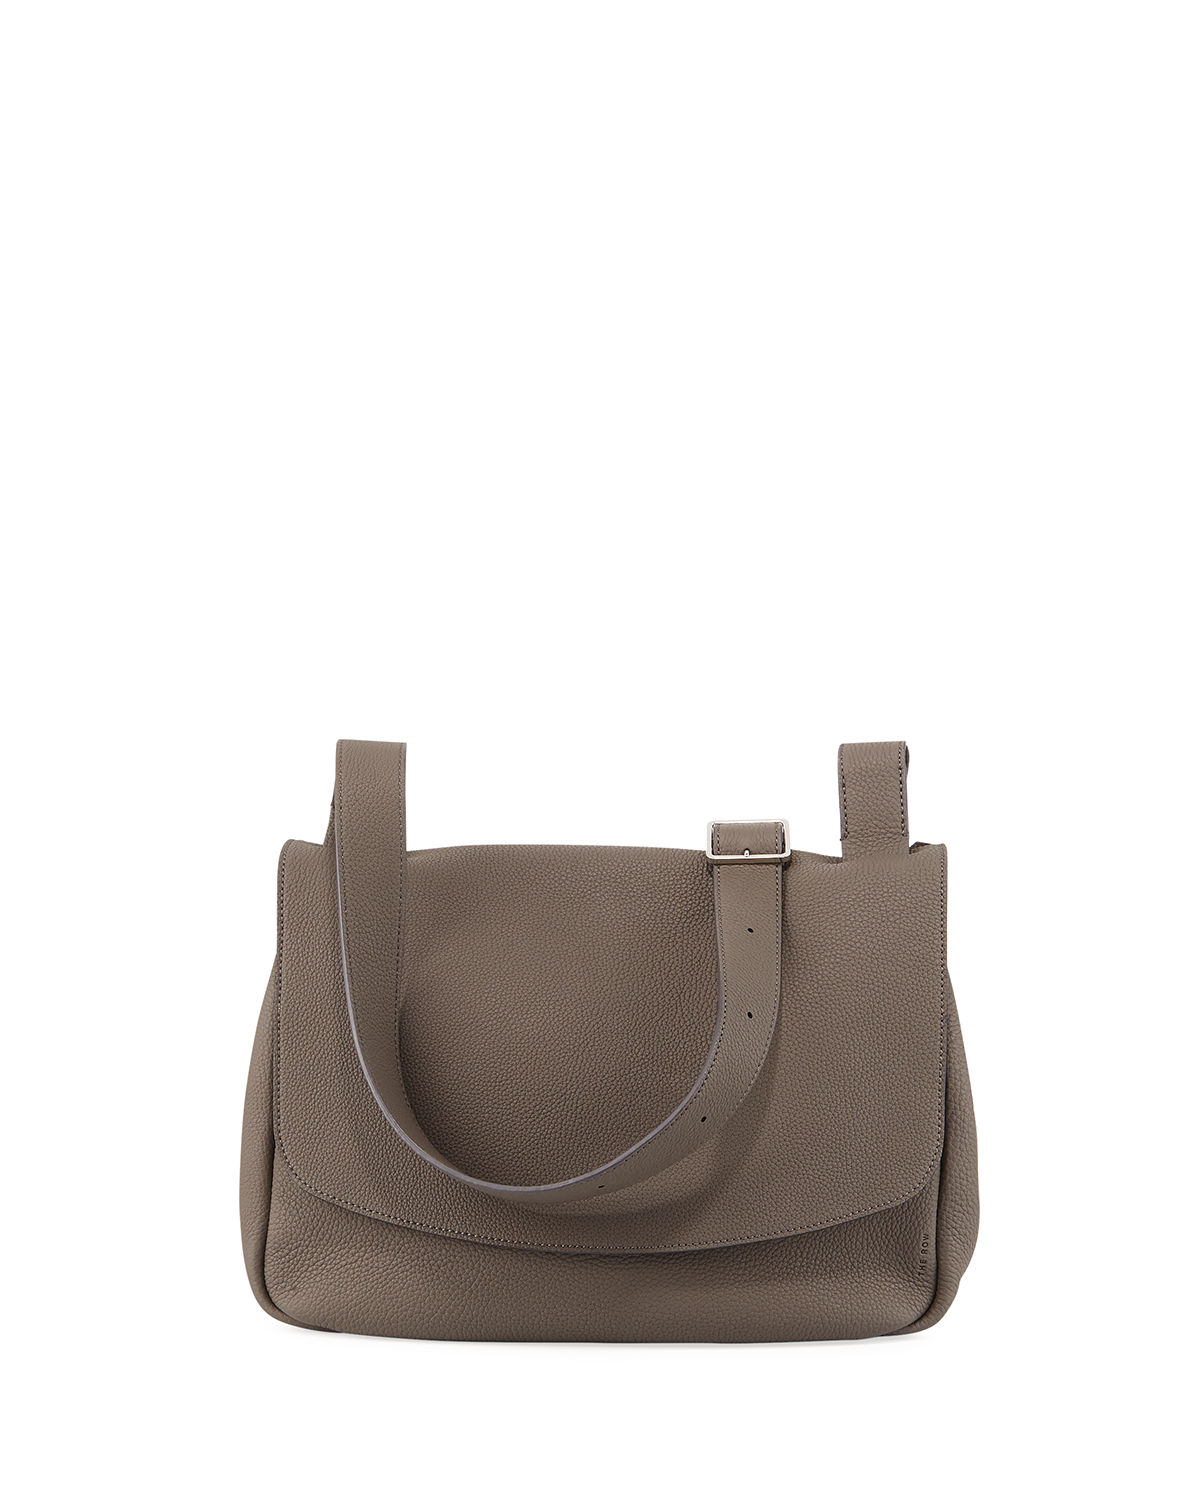 The Row SMALL MAIL BAG IN FINE GRAIN LEATHER